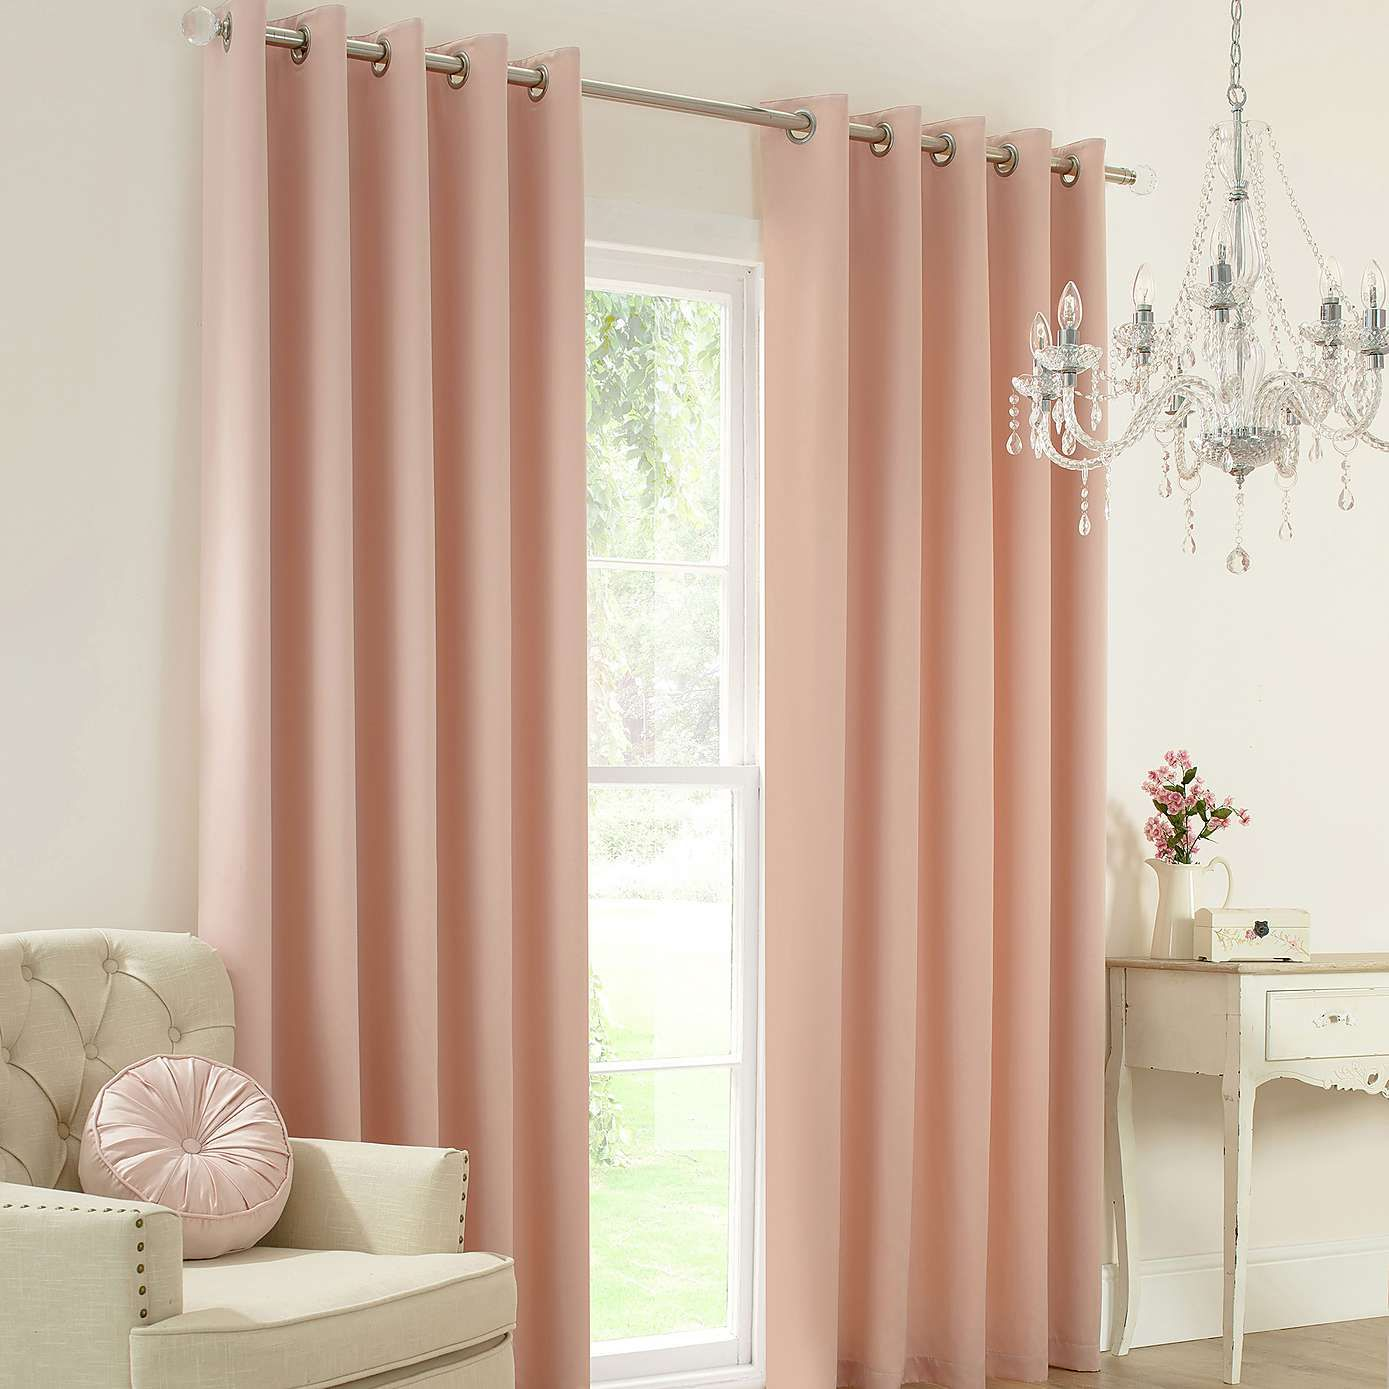 Blush Claire Thermal Eyelet Curtains Dunelm Home Decor